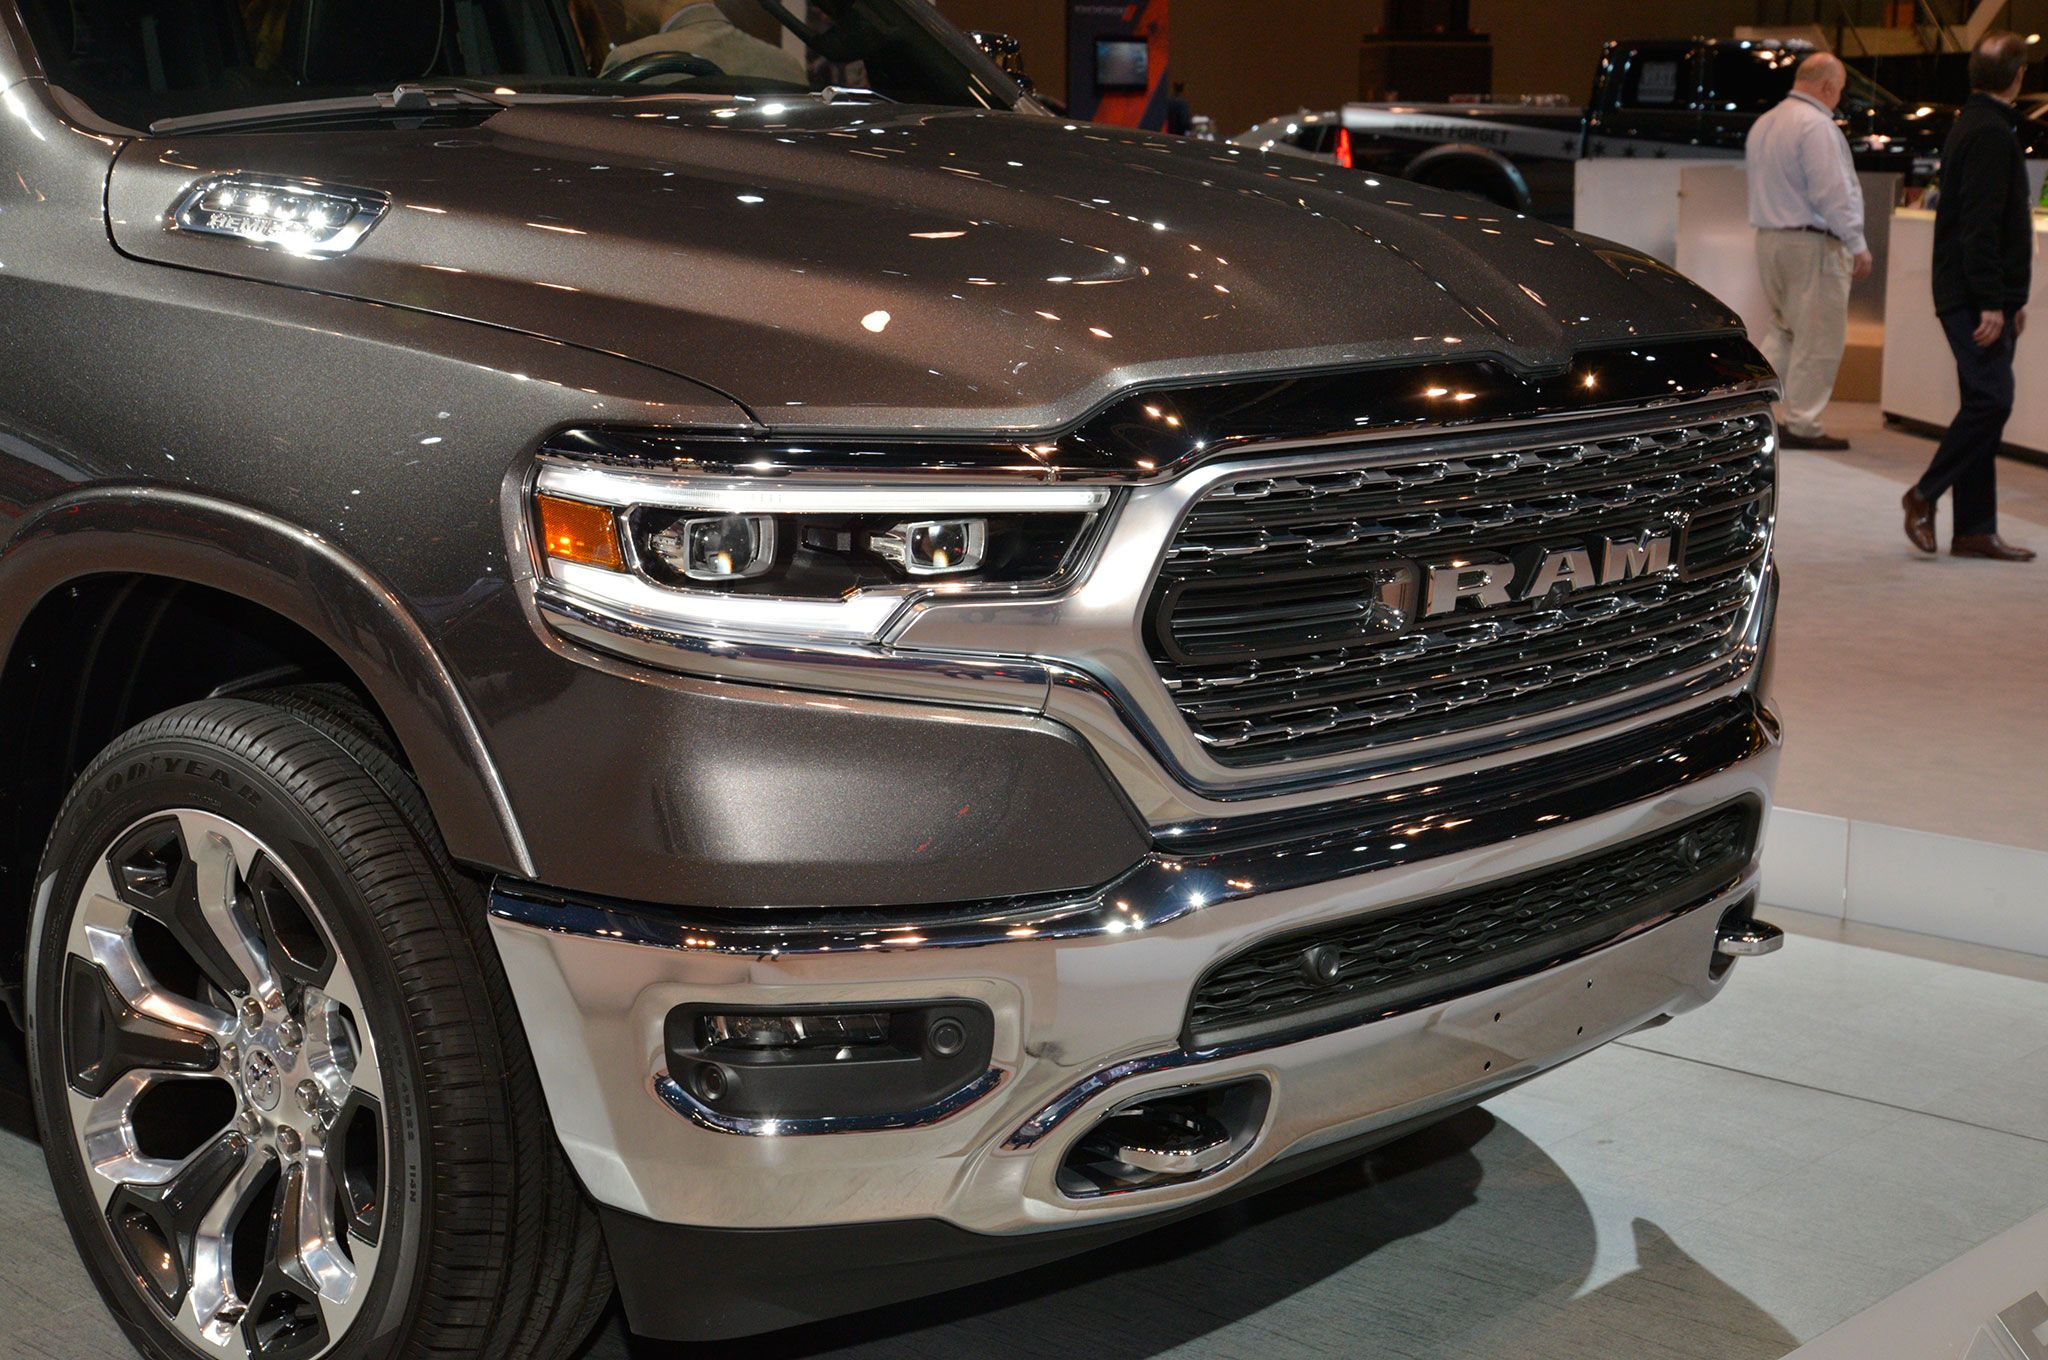 Three Fun 2019 Ram 1500 Easter Eggs Discovered in Chicago Motor